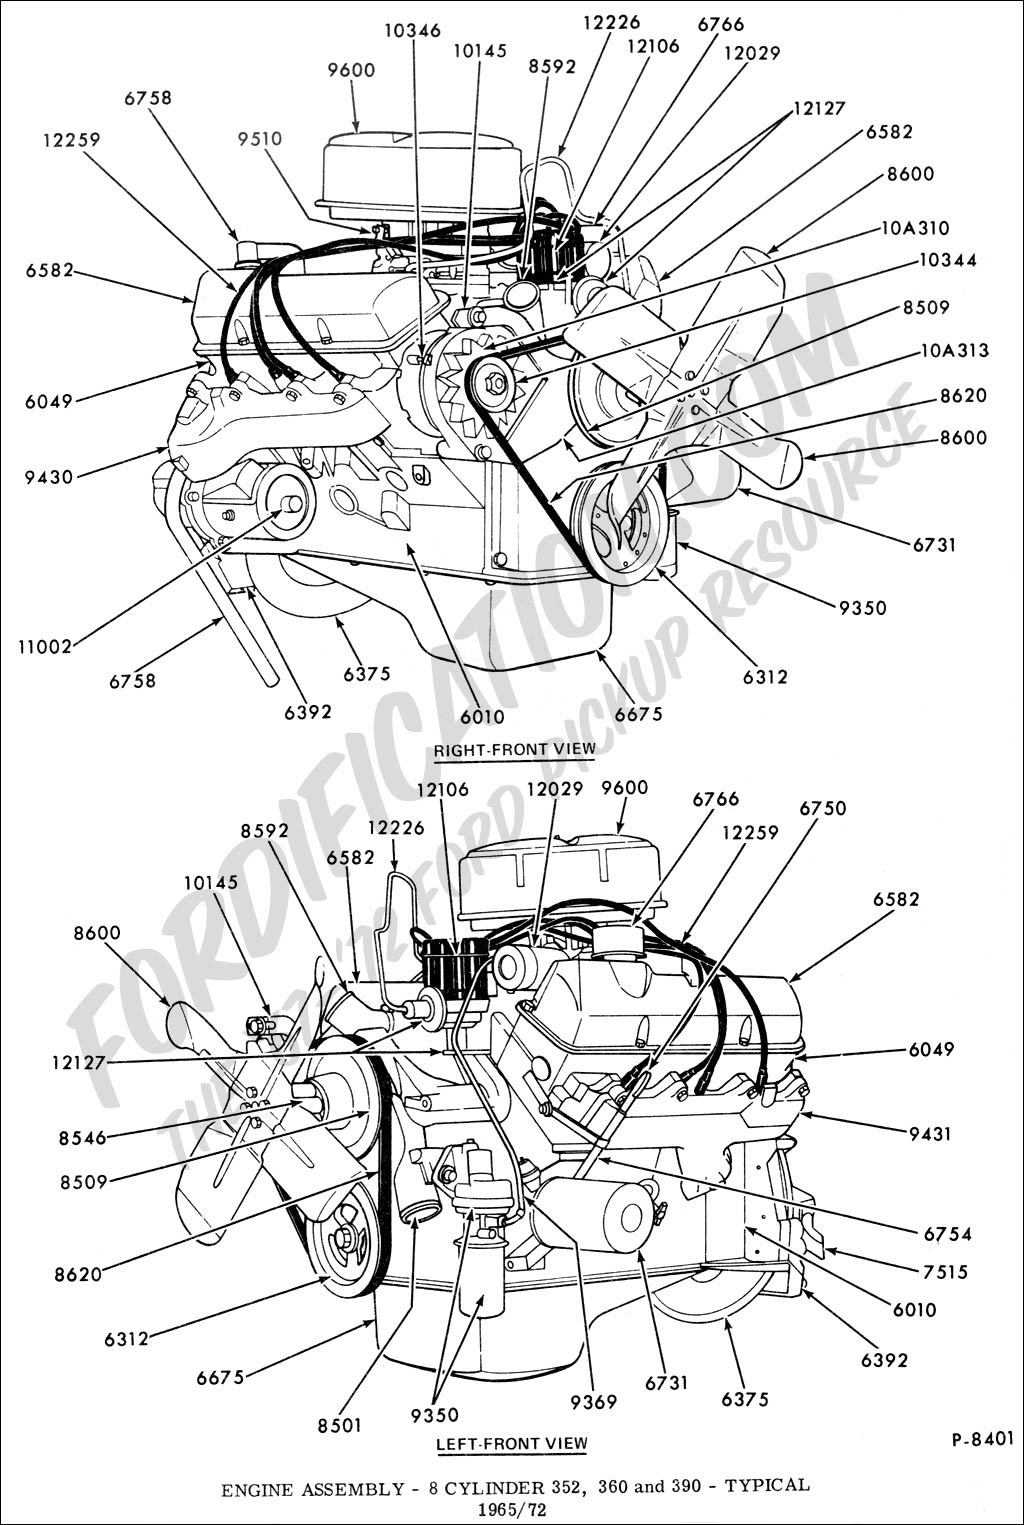 ford 302 engine diagram 1967 390 non-a/c engine accessory question - vintage ... #9